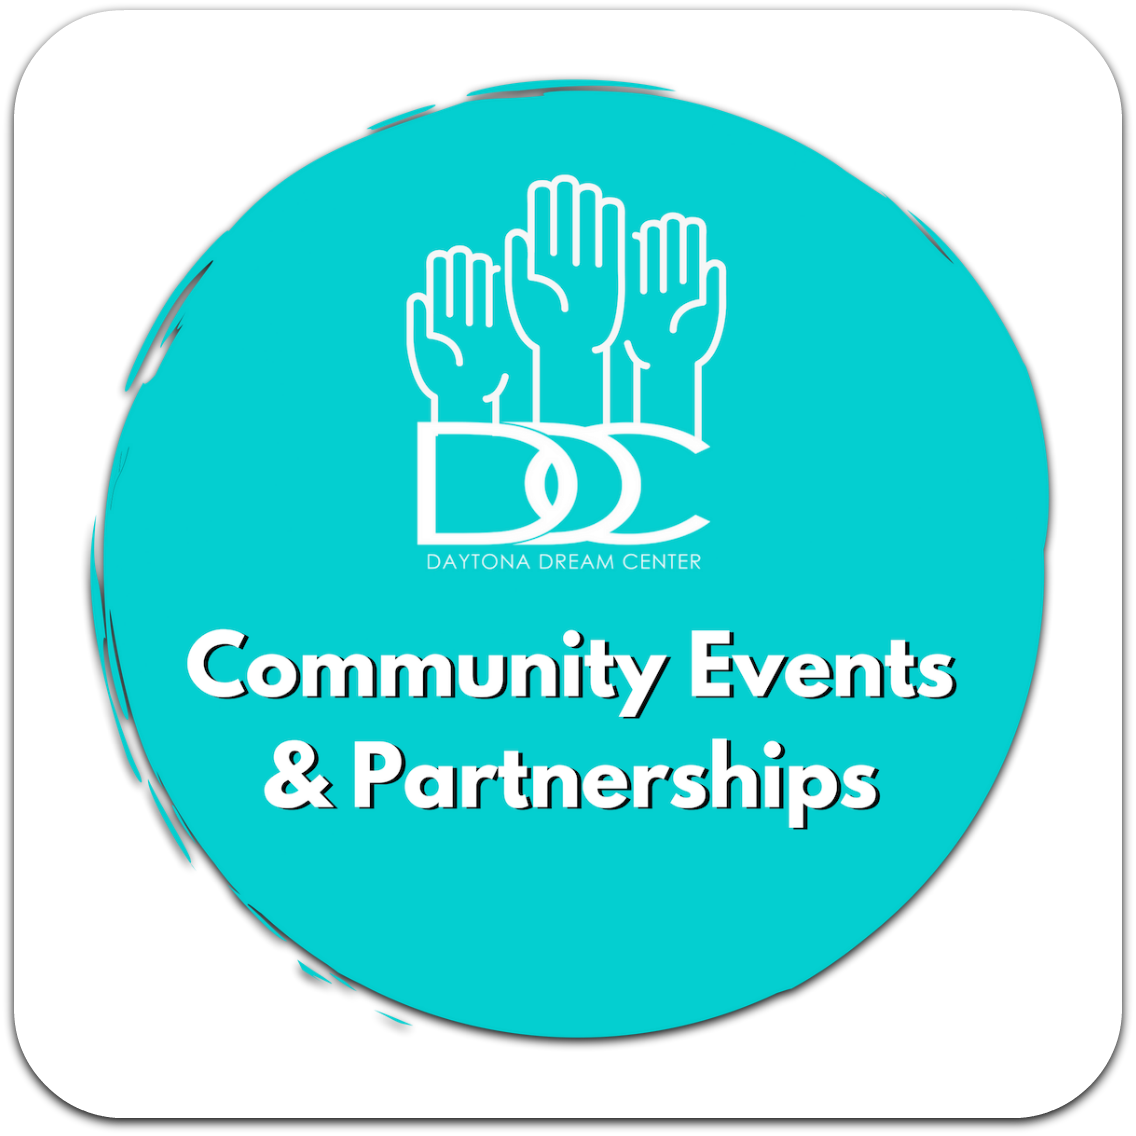 Daytona Dream Center - Community Events and Partnerships